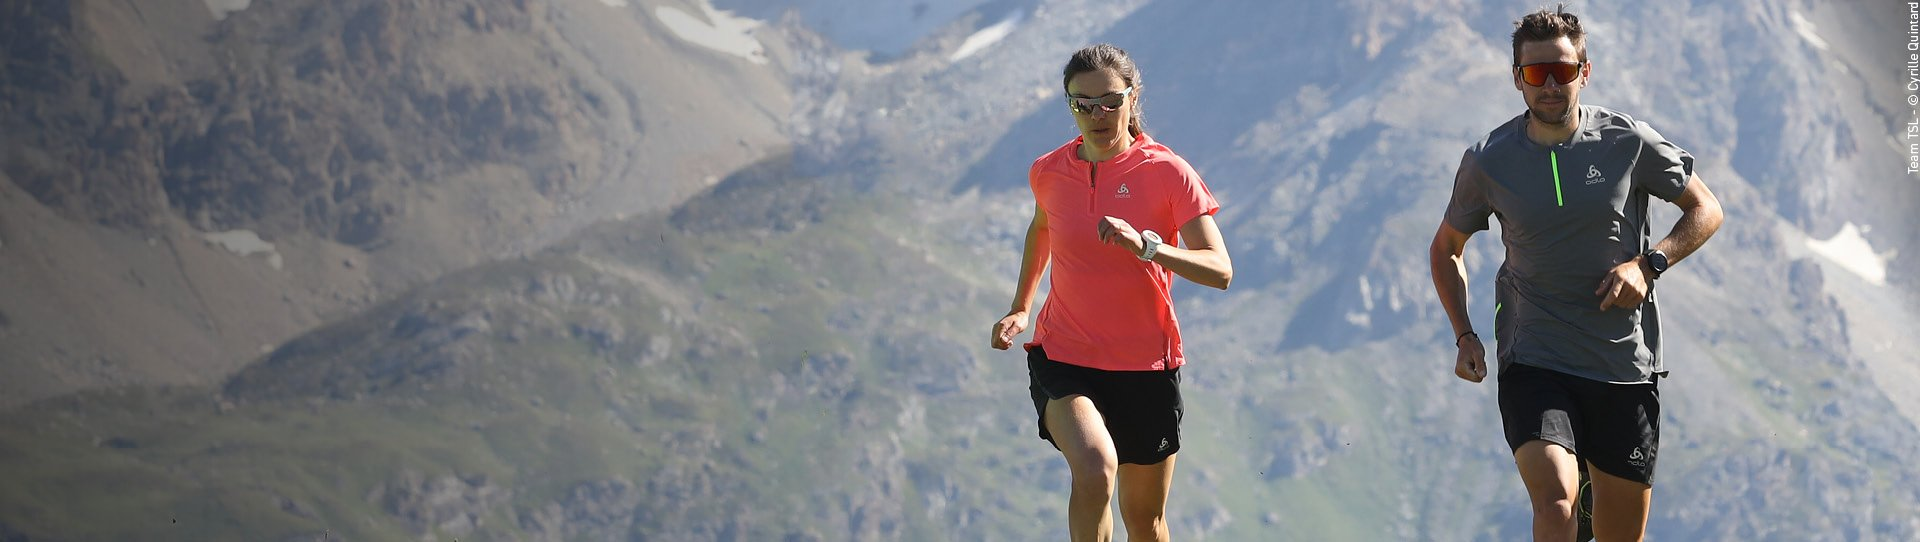 That's what our Axalp trail running collection embodies. Find your perfect gear for your next run now.